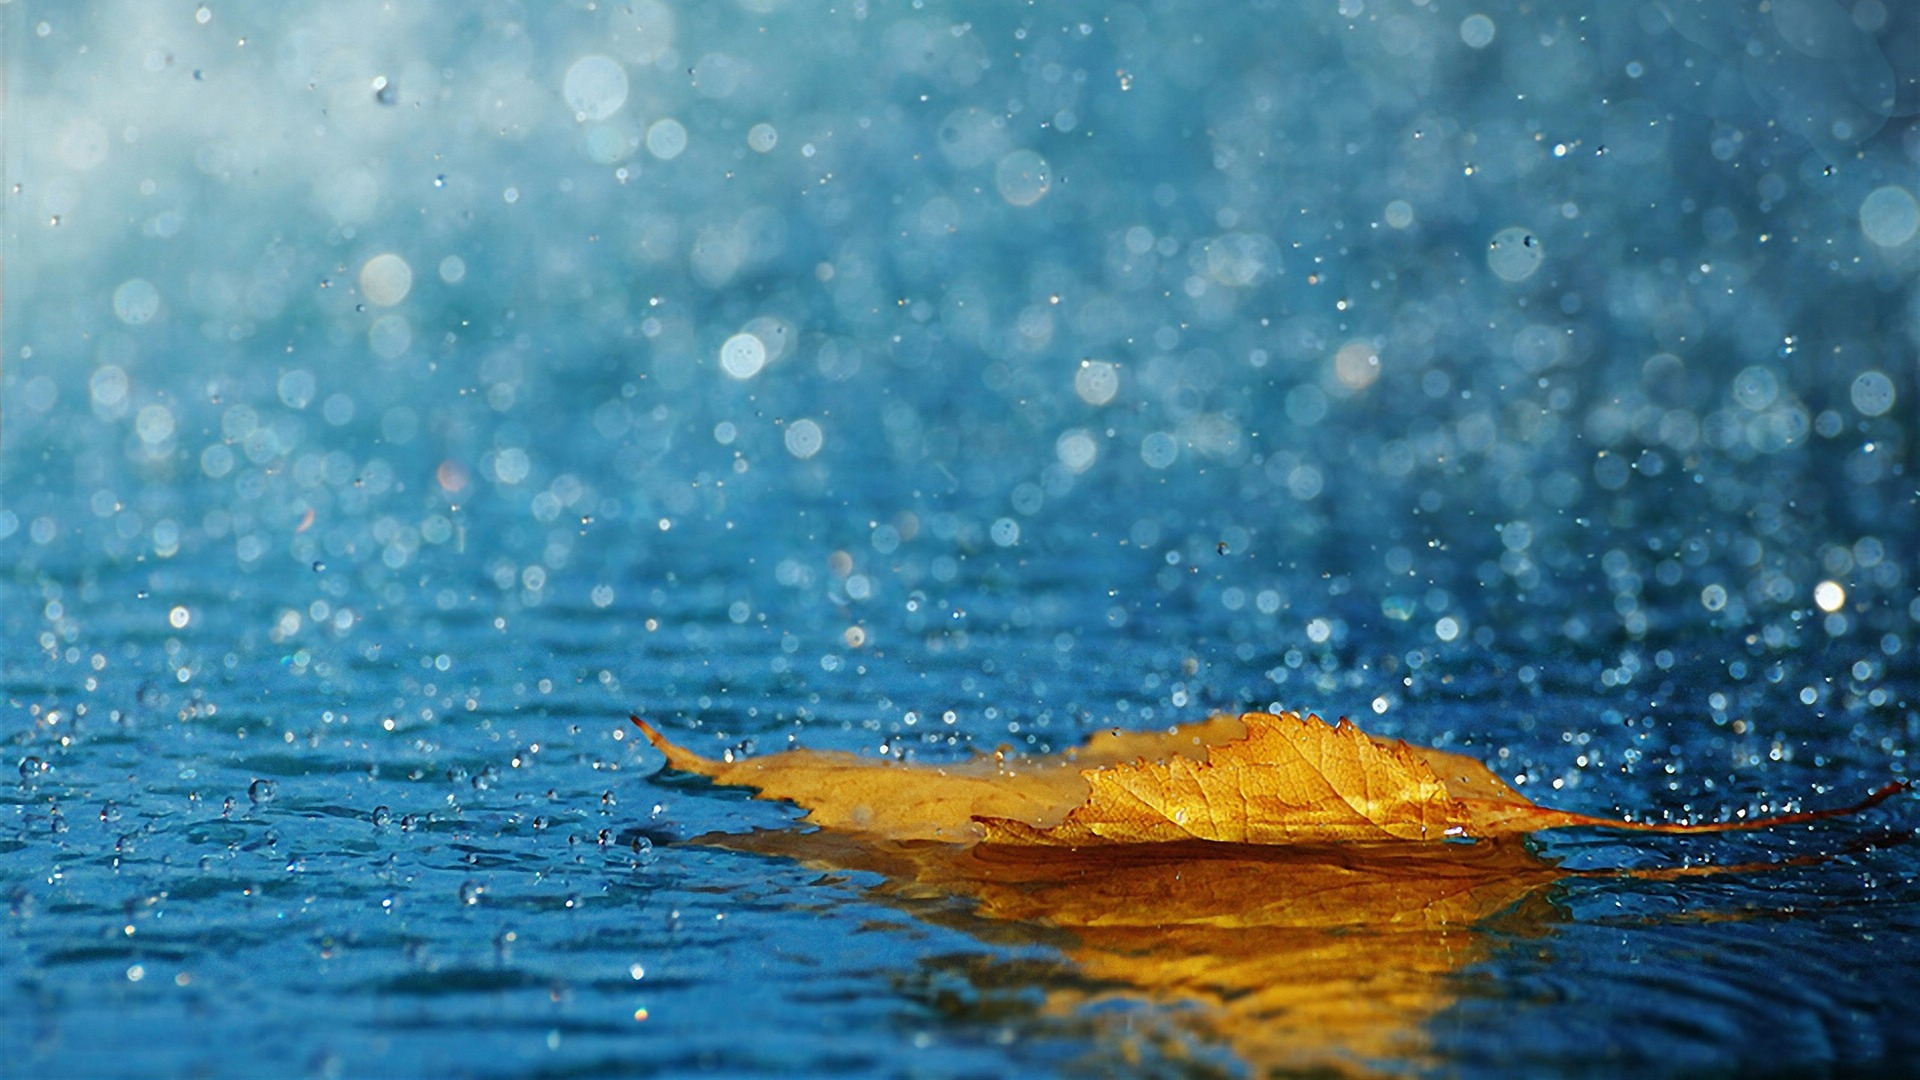 hd-wallpapers-raindrops-close-up-desktop-wallpaper-download-1920x1080-wallpaper